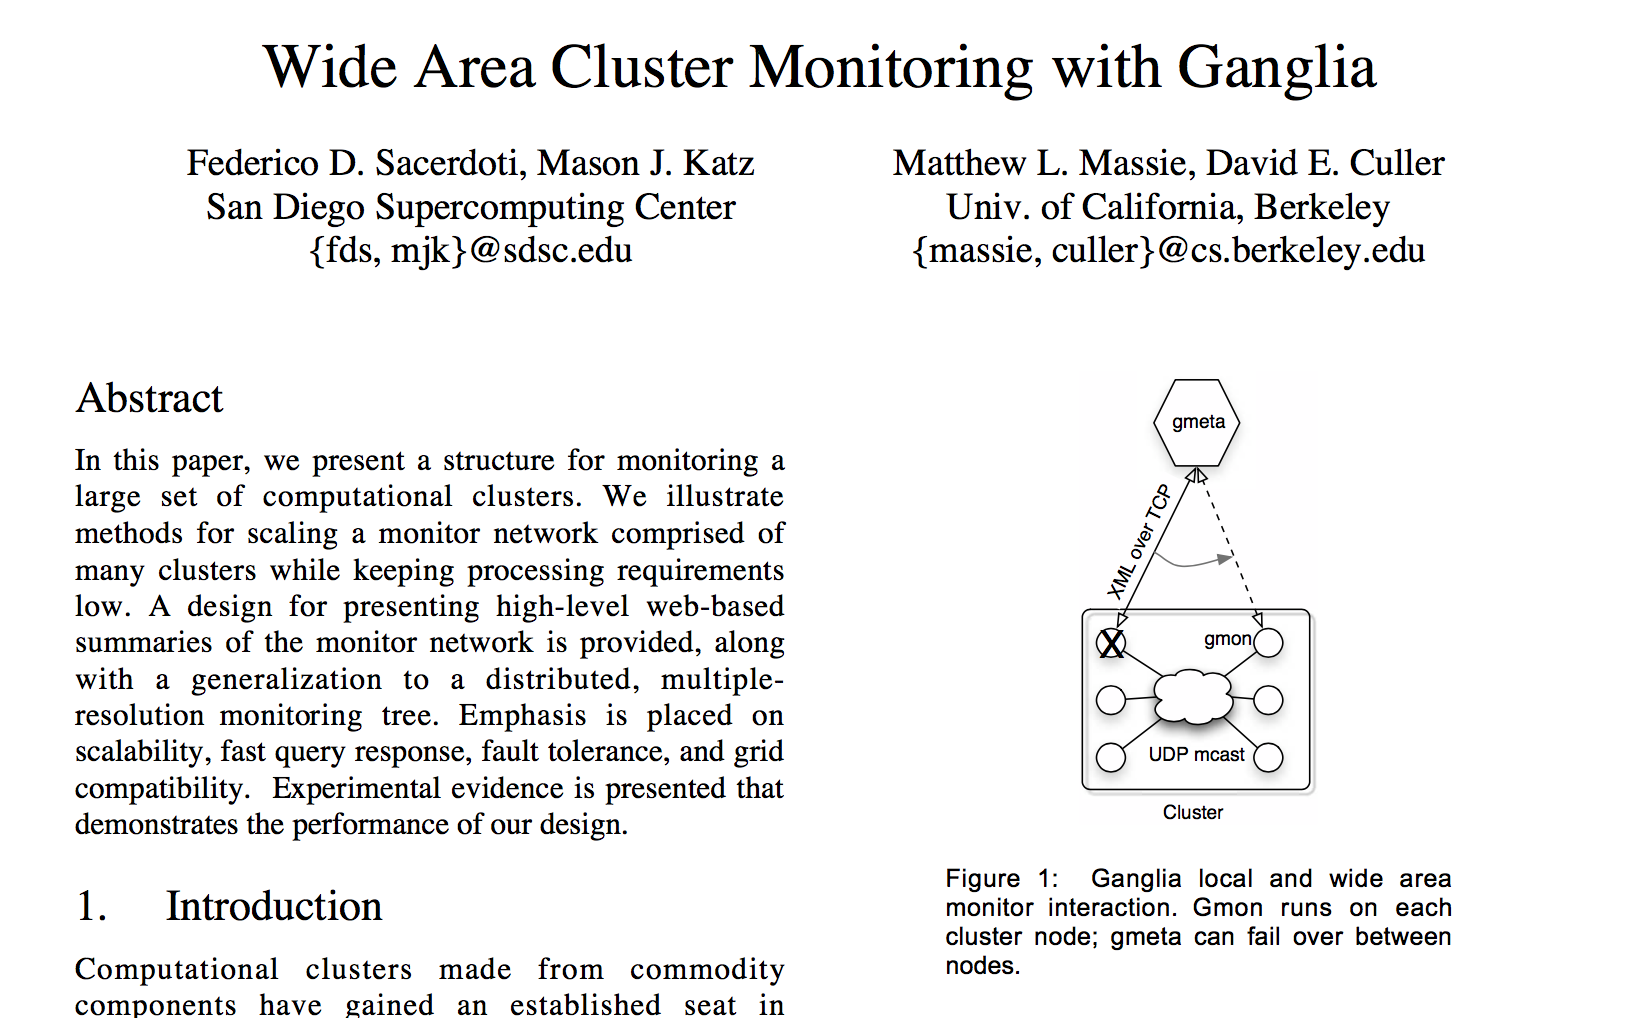 《Wide Area Cluster Monitoring with Ganglia》(必读)